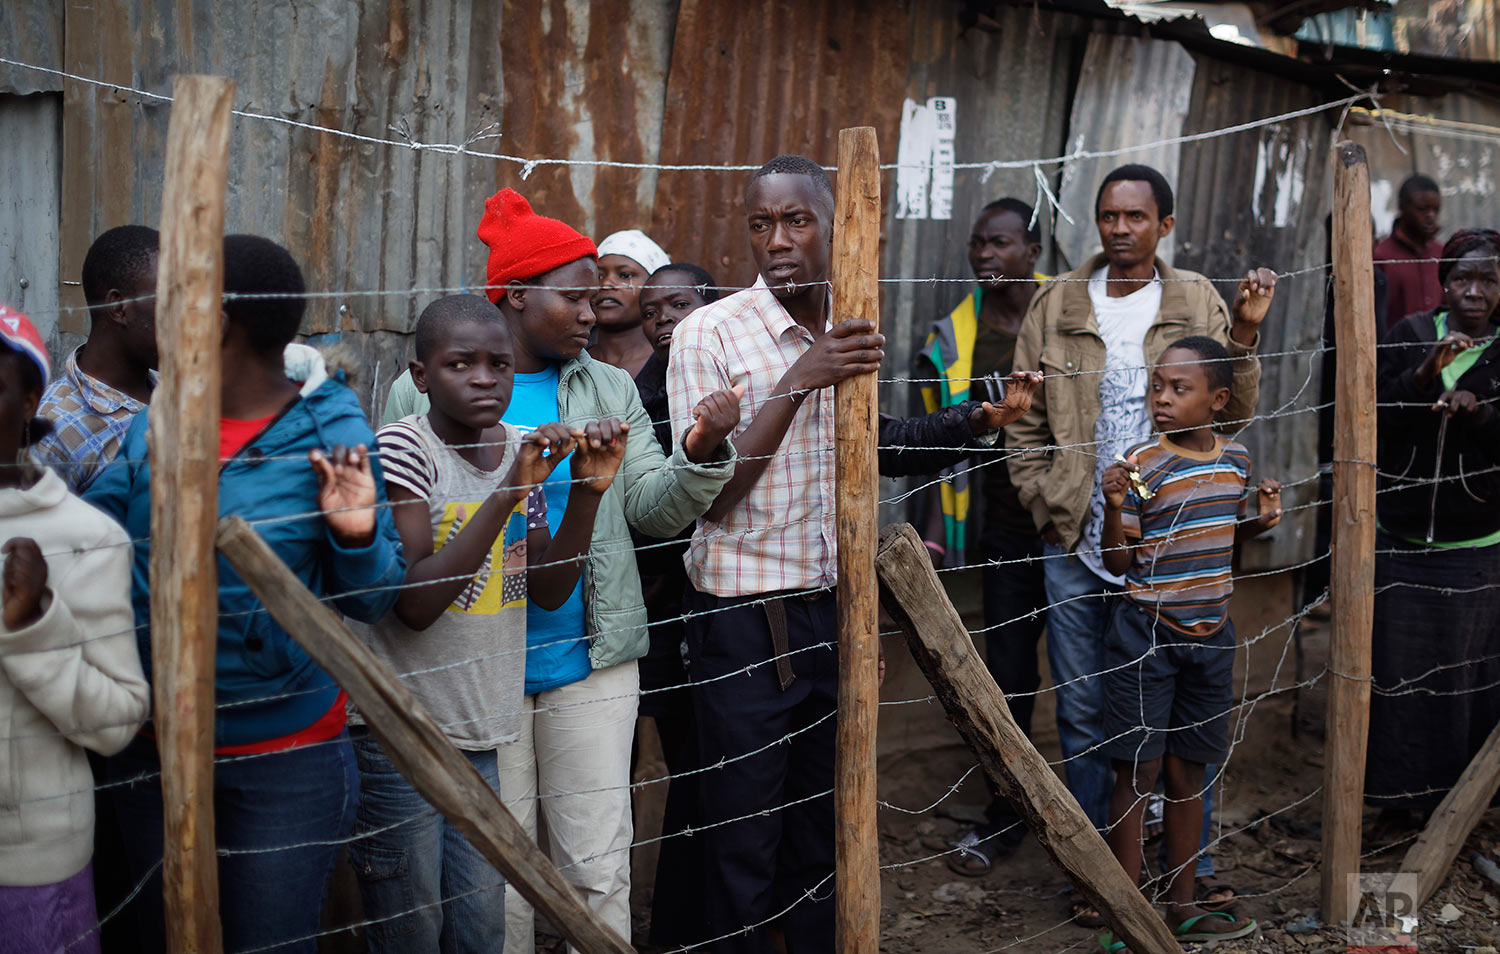 Residents look through a fence at the scene near the body of a man who had been shot in the head and who the crowd claimed had been shot by police, in the Mathare area of Nairobi, Kenya, Wednesday, Aug. 9, 2017. Kenya's election took an ominous turn on Wednesday as violent protests erupted in the capital. (AP Photo/Ben Curtis)